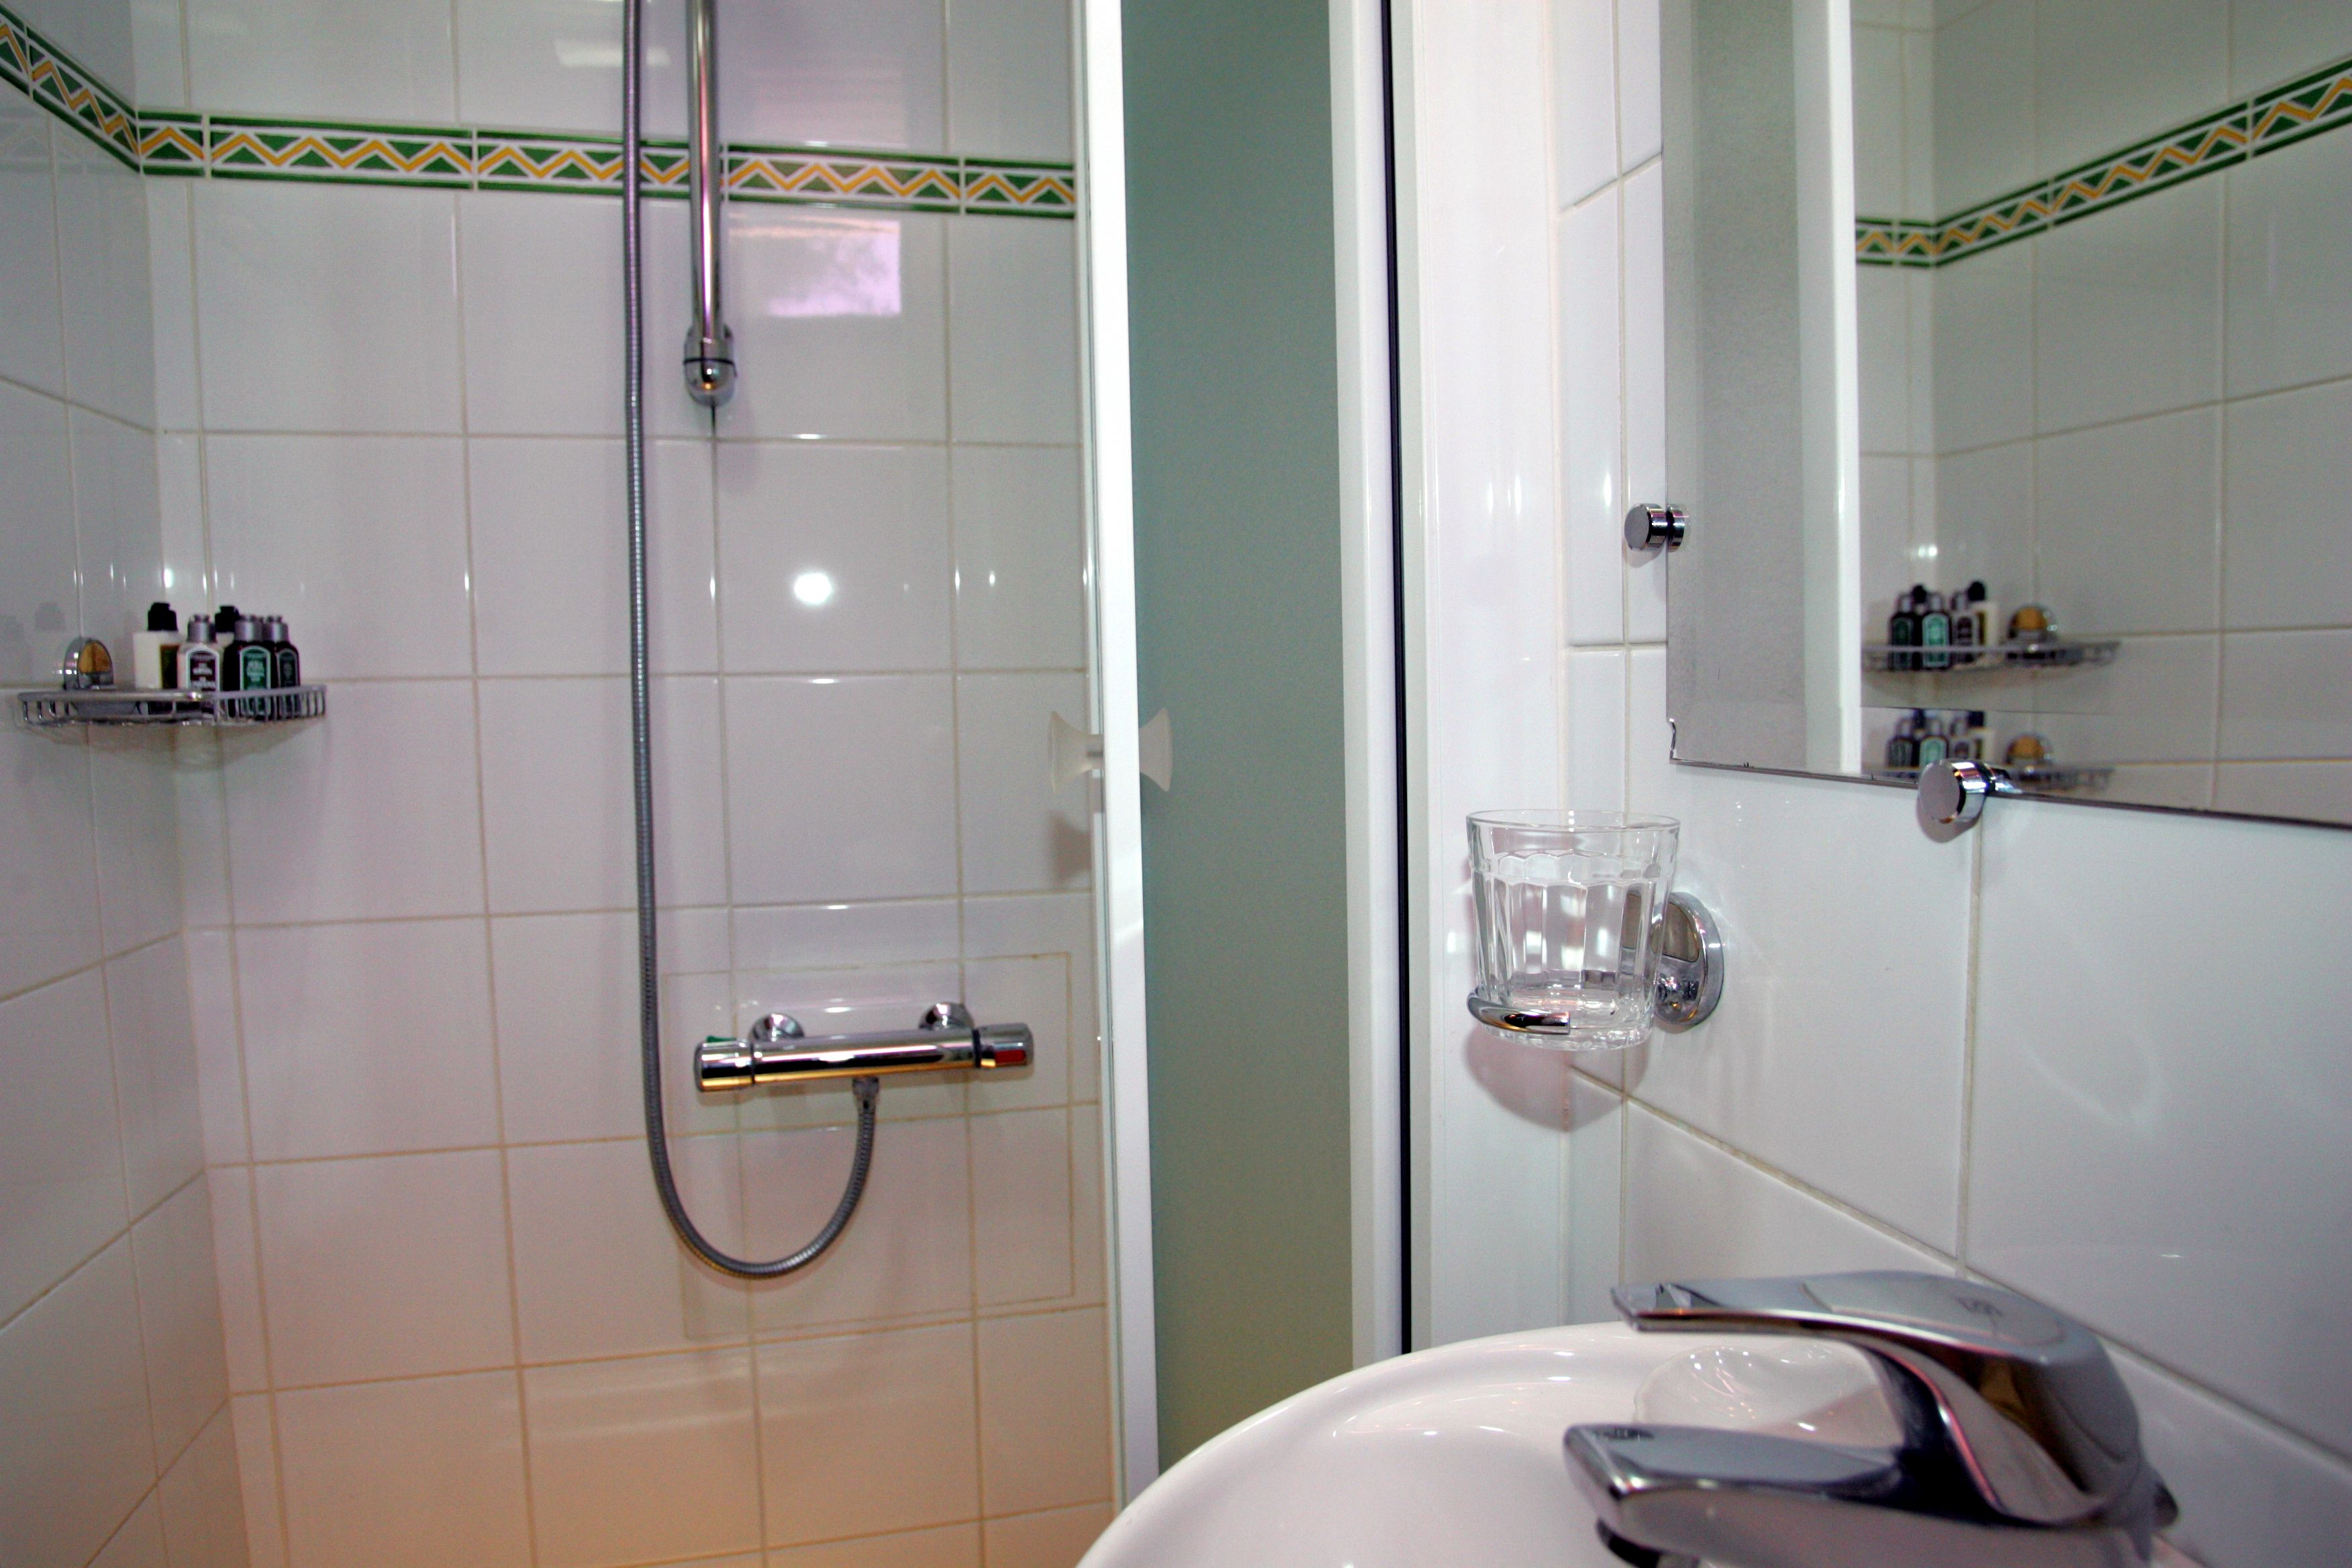 European Waterways Anjodi Accommodation Bathroom.jpg